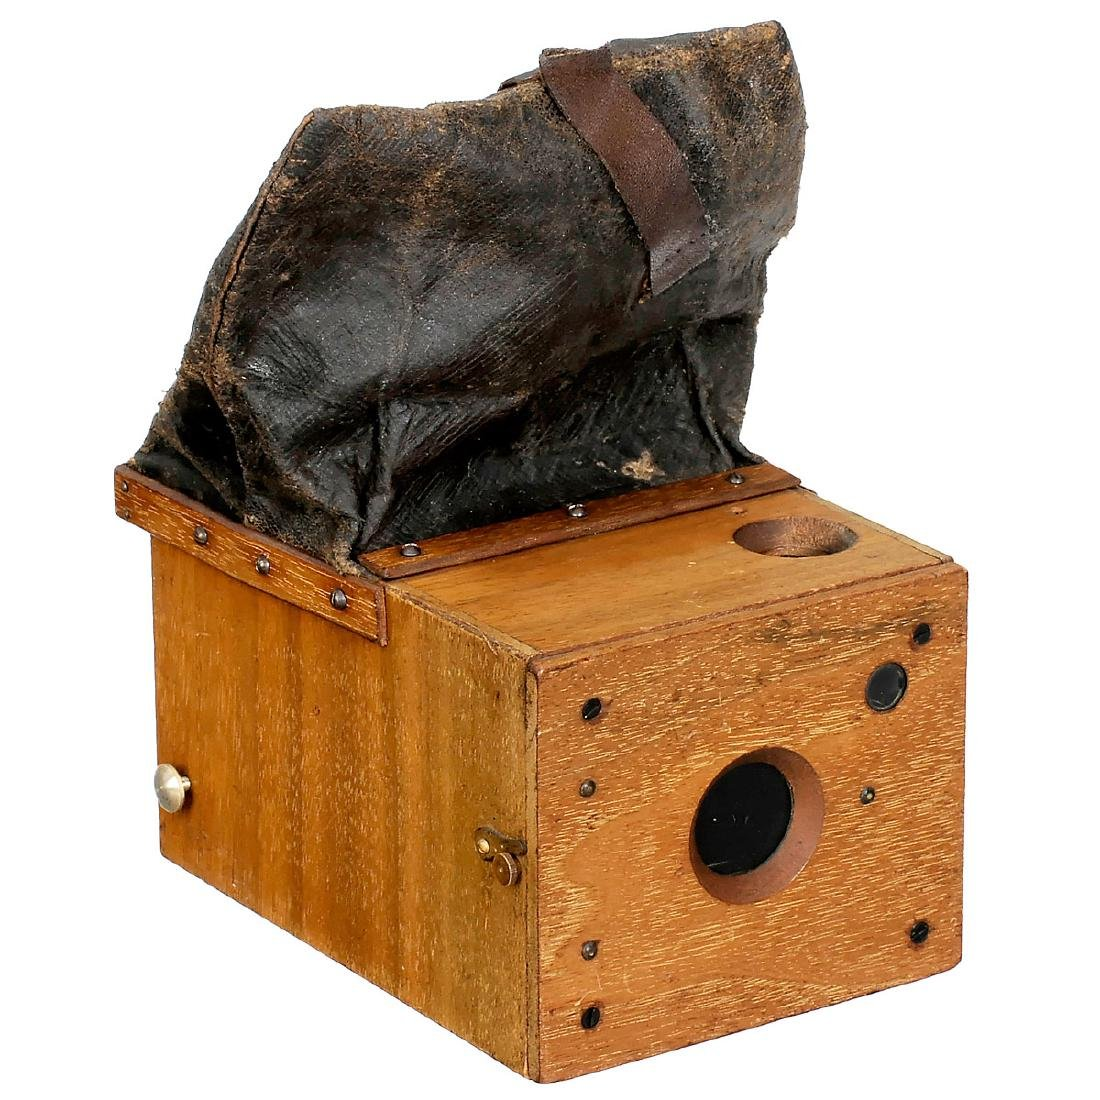 Detective Magazine Camera 6 x 8 cm by Stirn, c. 1891